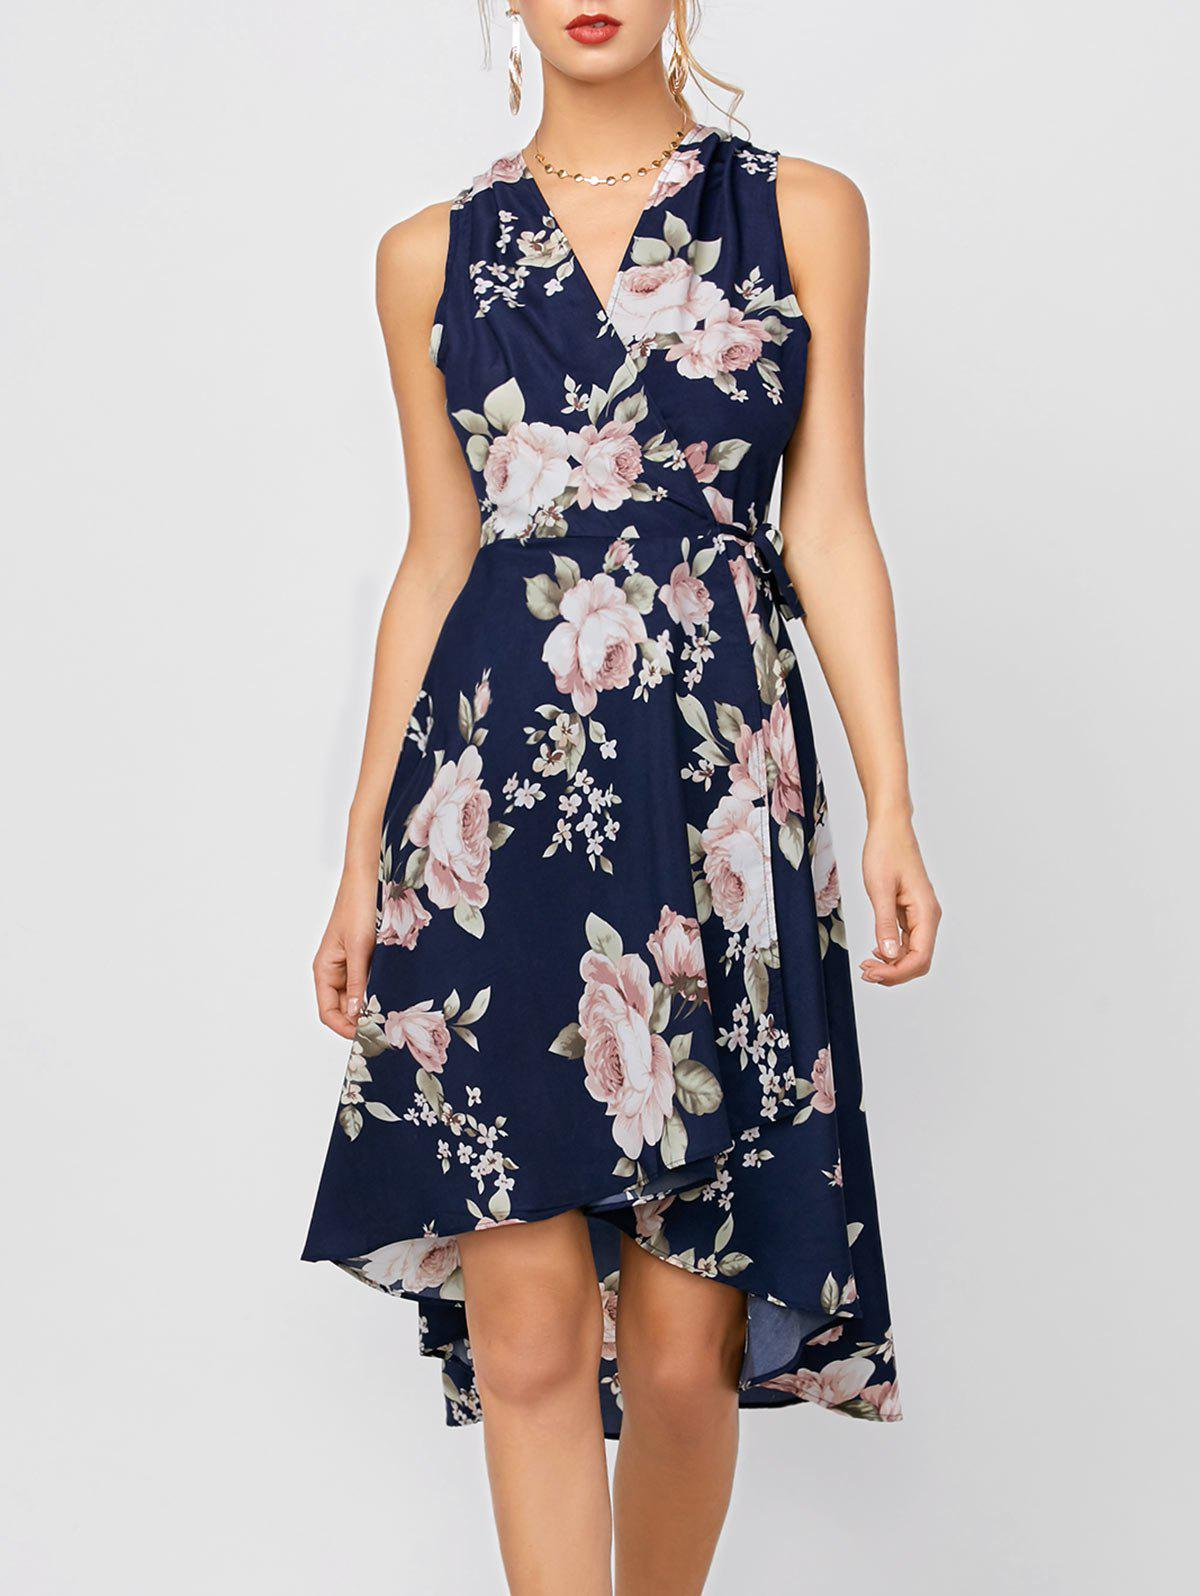 Sleeveless High Low Floral Print Swing Wrap DressWOMEN<br><br>Size: L; Color: DEEP BLUE; Style: Casual; Material: Polyester; Silhouette: High-Low; Dresses Length: Mid-Calf; Neckline: V-Neck; Sleeve Length: Sleeveless; Pattern Type: Floral; With Belt: No; Season: Summer; Weight: 0.2500kg; Package Contents: 1 x Dress;